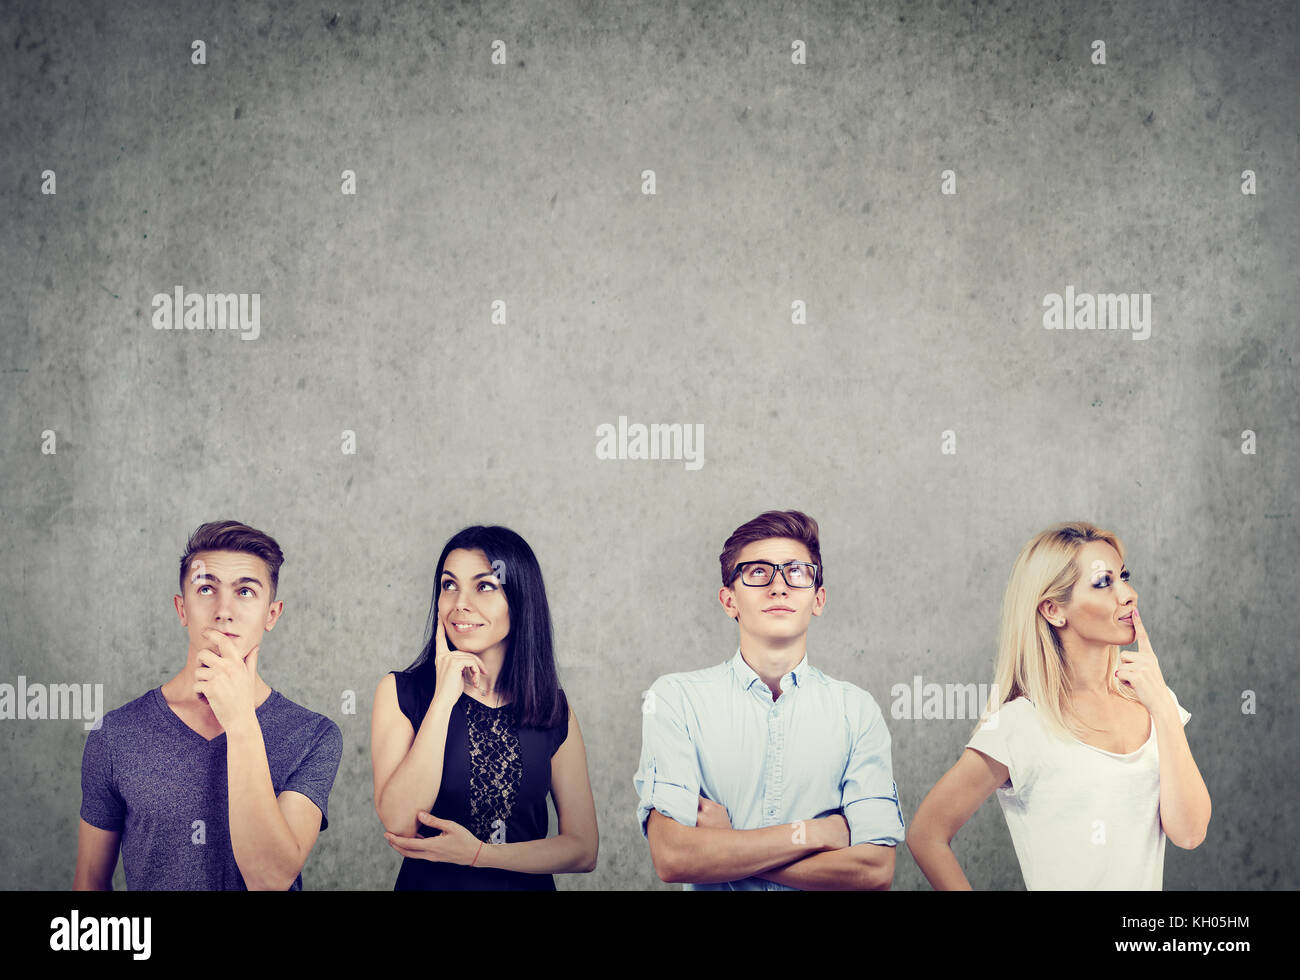 Portrait of two men and two women thinking hard looking up while standing near a concrete wall. - Stock Image